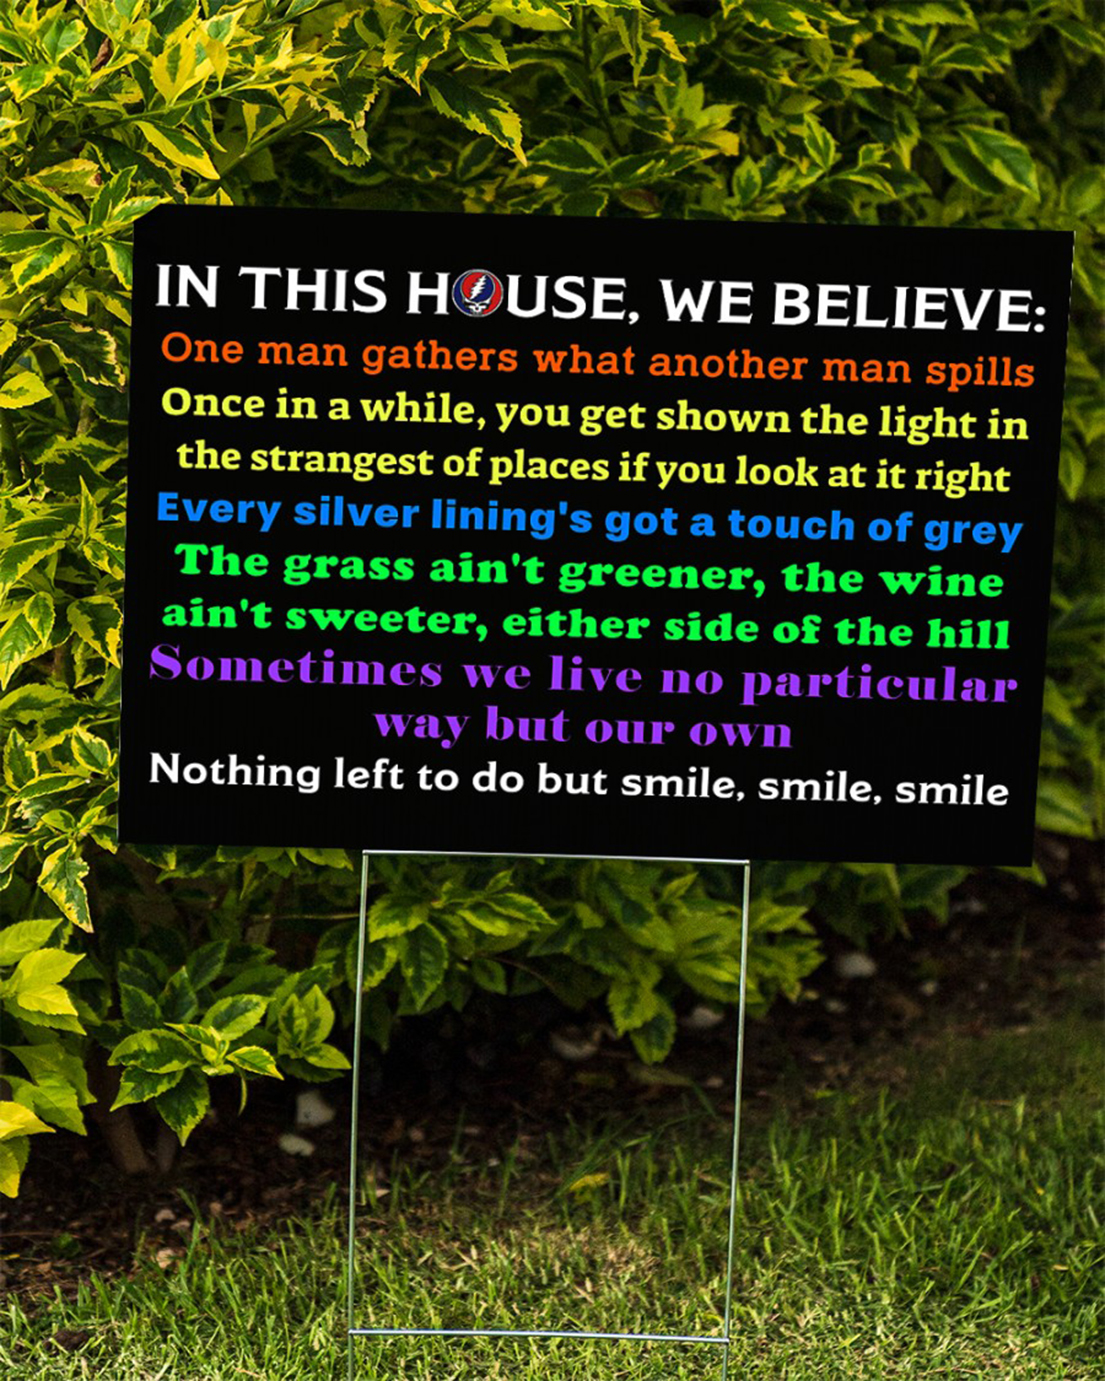 Grateful Dead In this house we believe one man gathers what another man spills yard sign - Picture 1